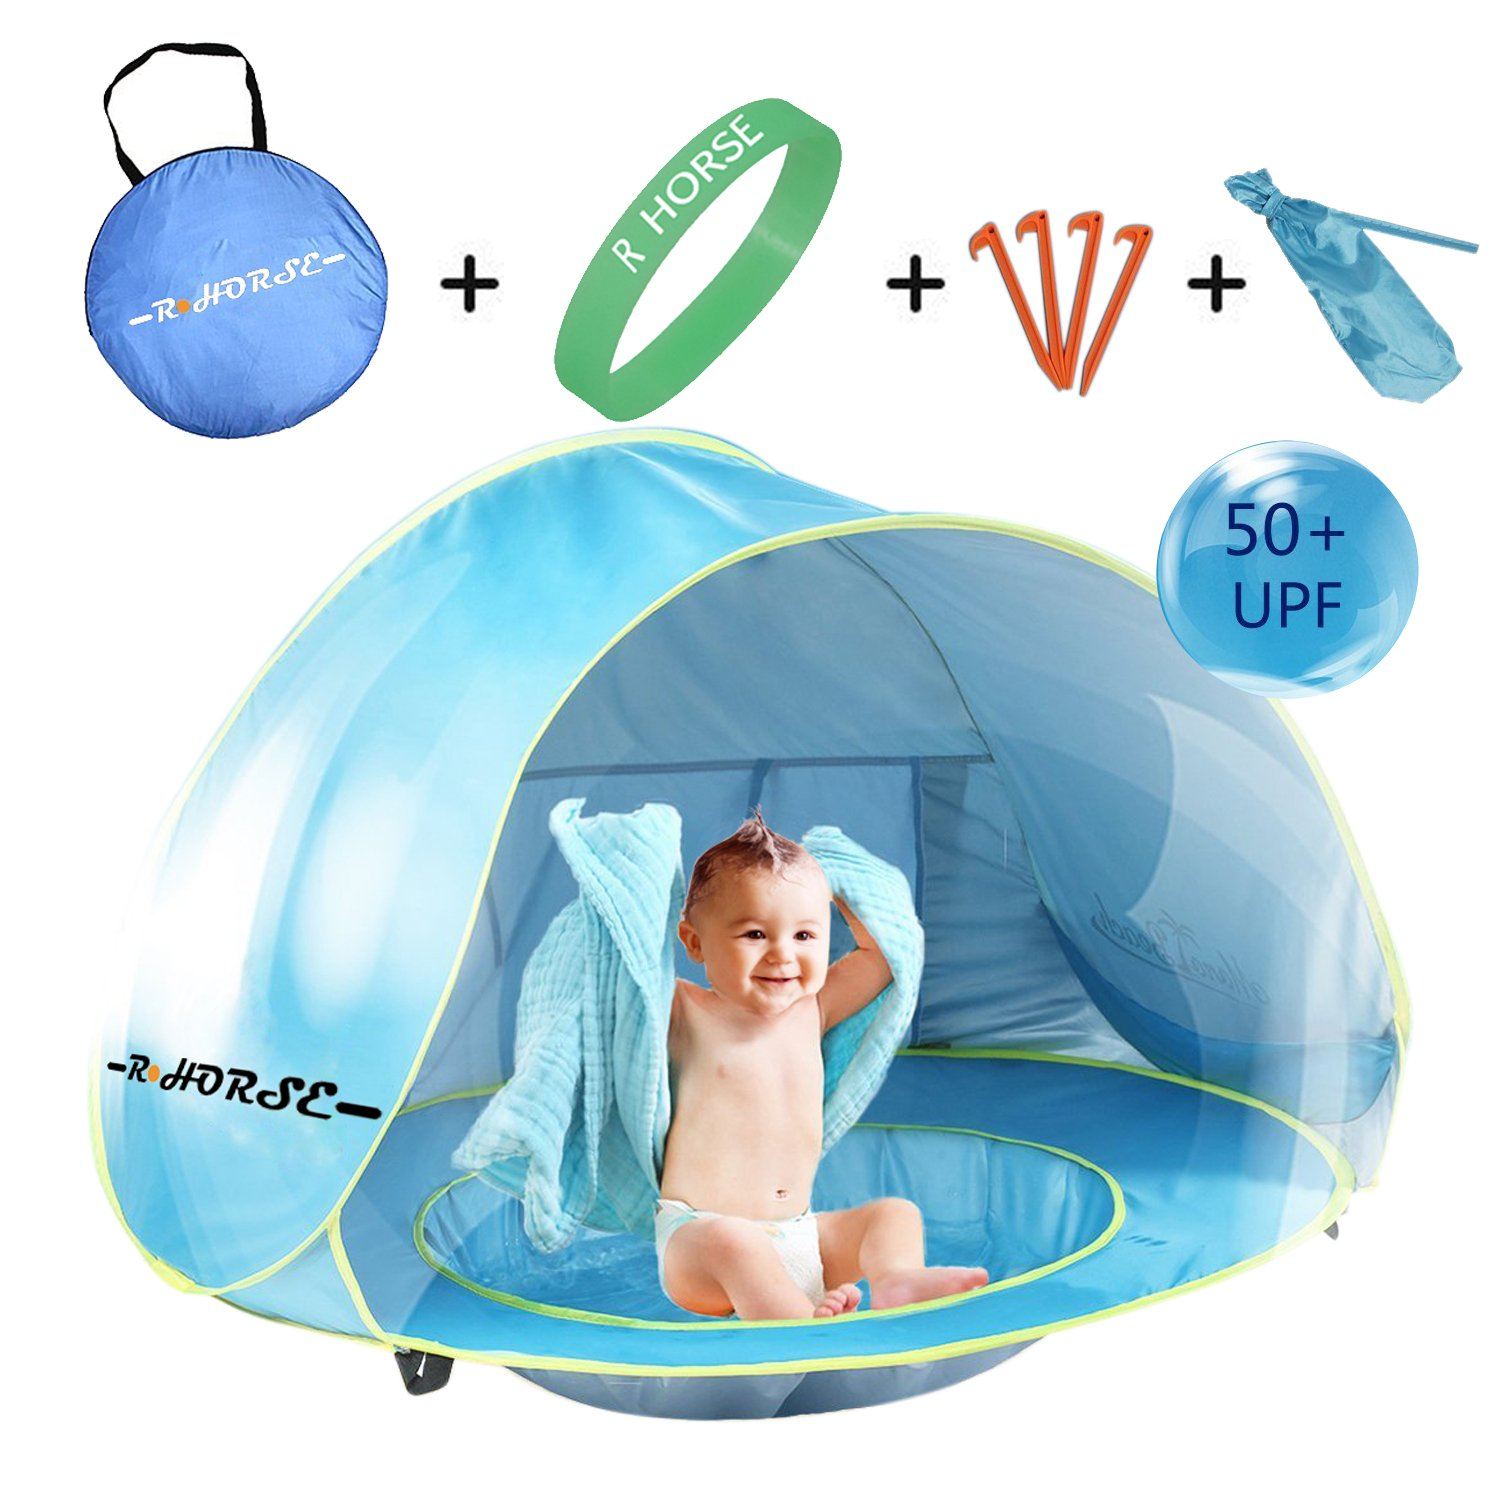 Baby Beach Tent R HORSE Pop Up Portable Shade Pool UV Protection Sun Shelter NEW  sc 1 st  eBay & Baby Beach Tent R HORSE Pop Up Portable Shade Pool UV Protection ...